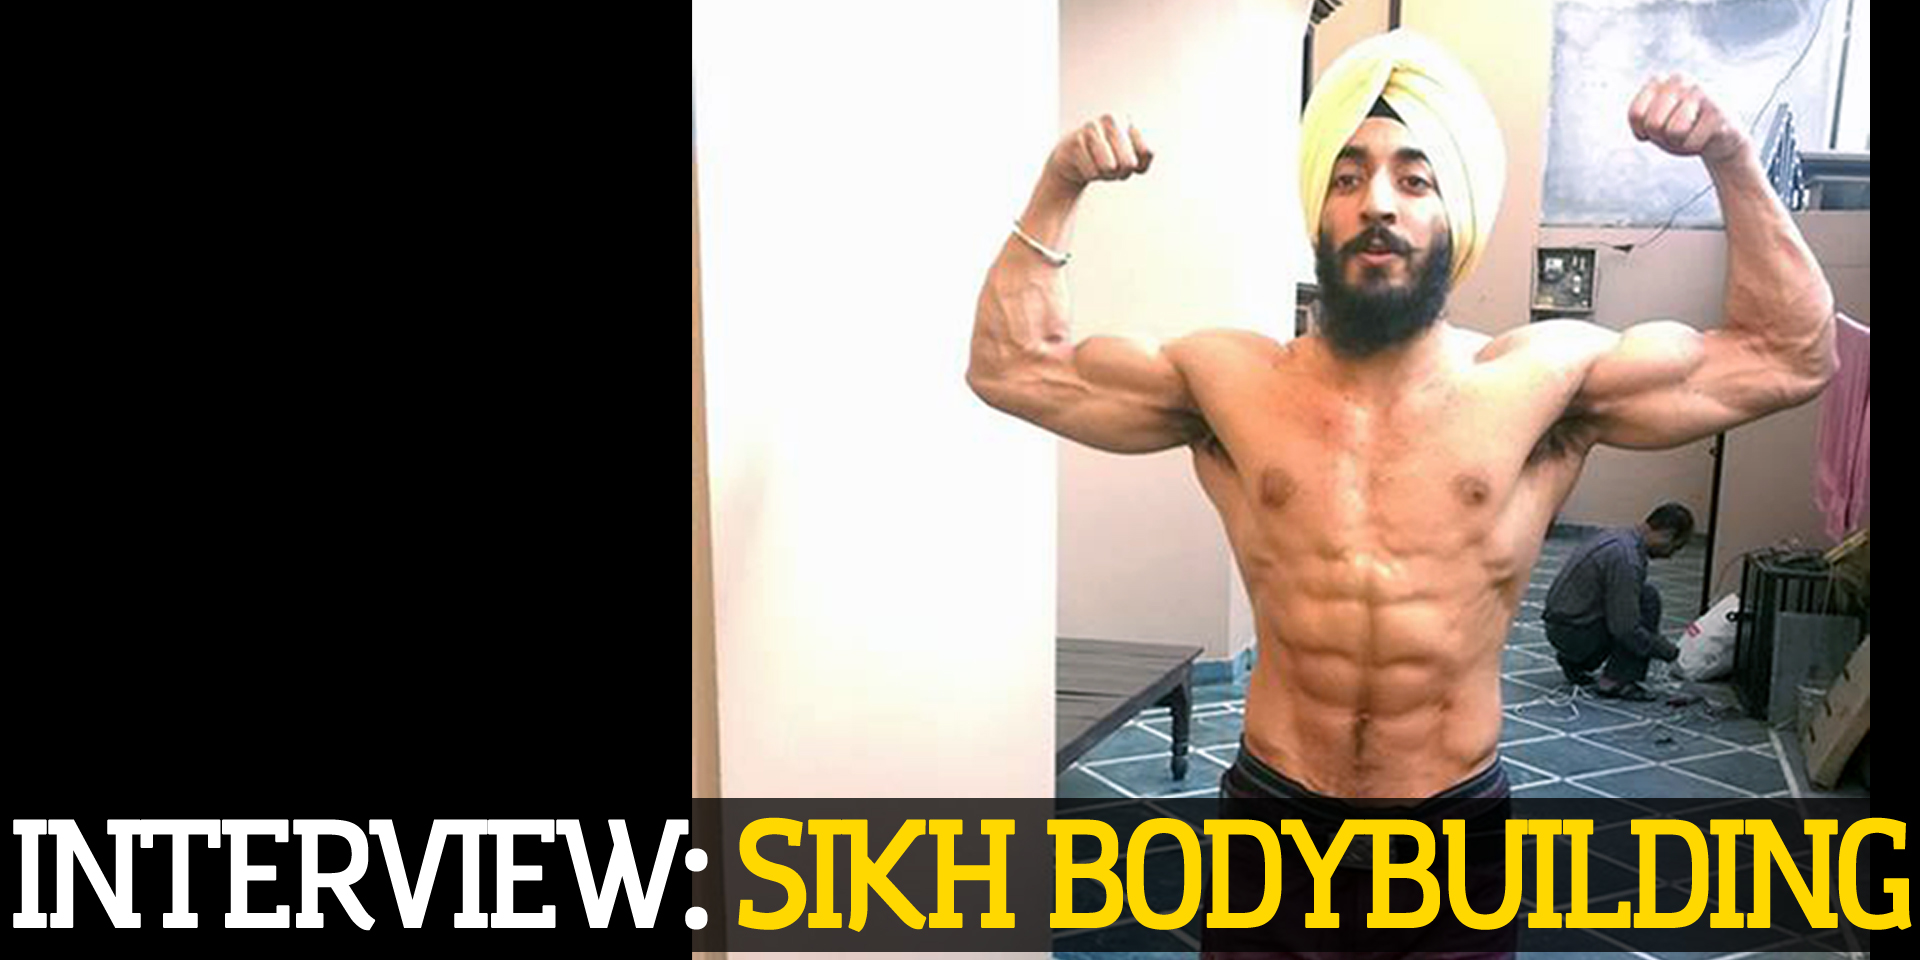 Interview - Sikh Bodybuilding - Azad Singh Fitness